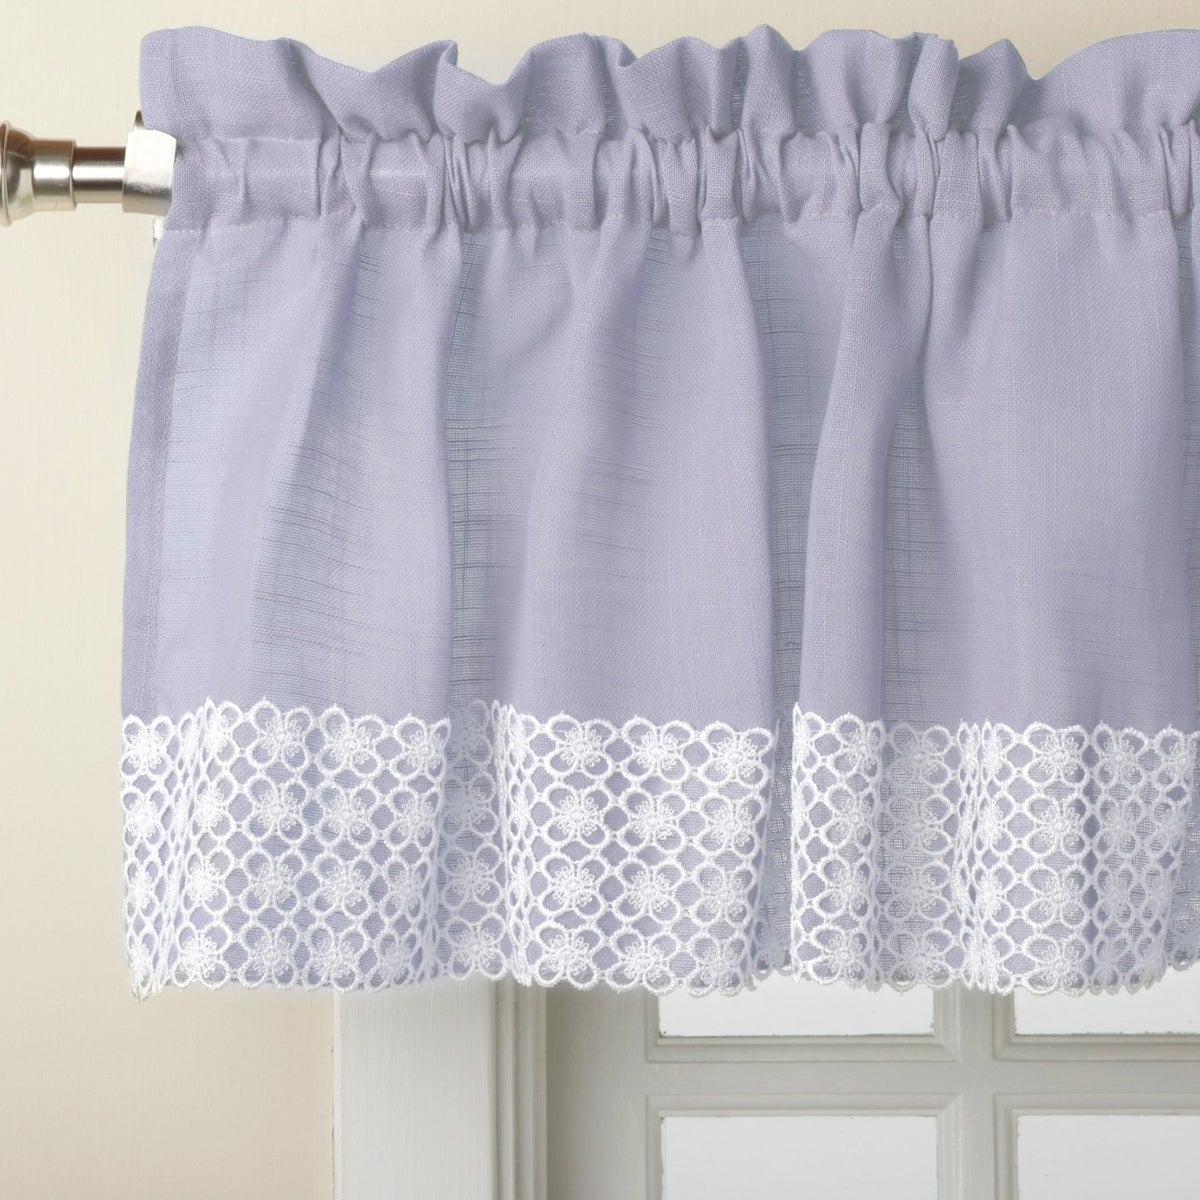 Favorite Country Style Curtain Parts With White Daisy Lace Accent Within Blue Country Style Kitchen Curtains With White Daisy Lace Accent (View 9 of 20)